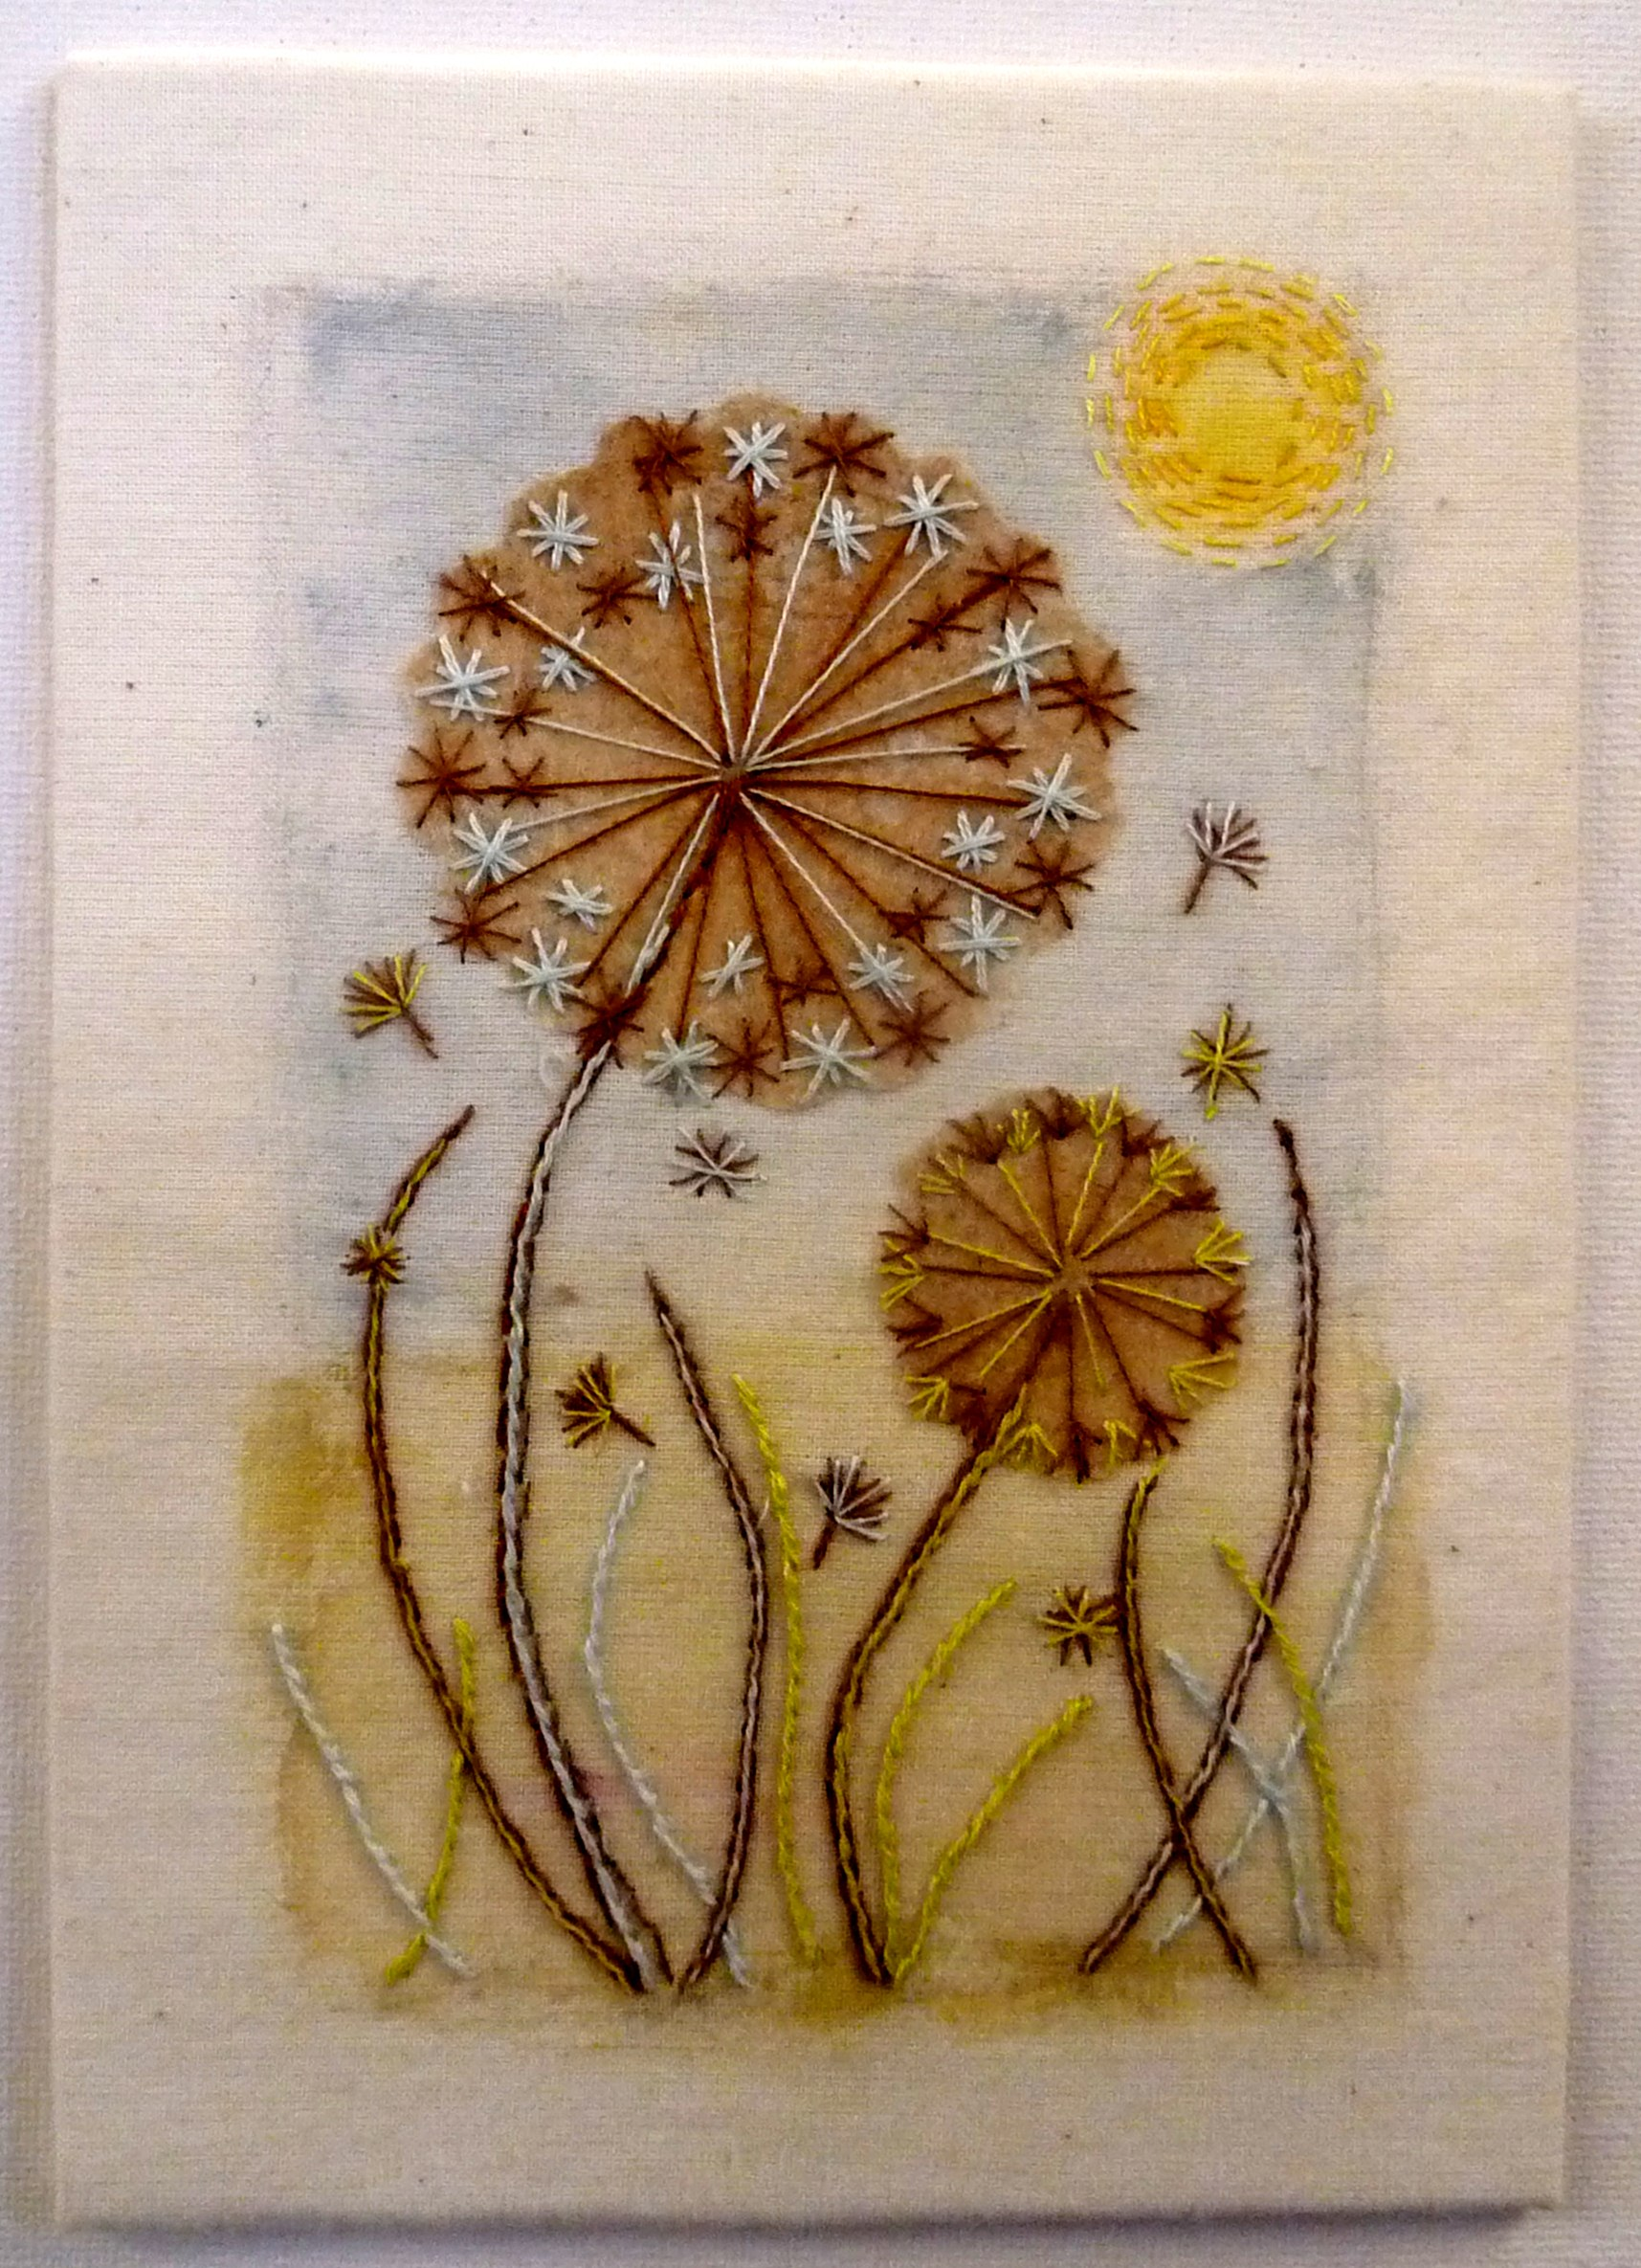 SEED HEADS by Joyce Young